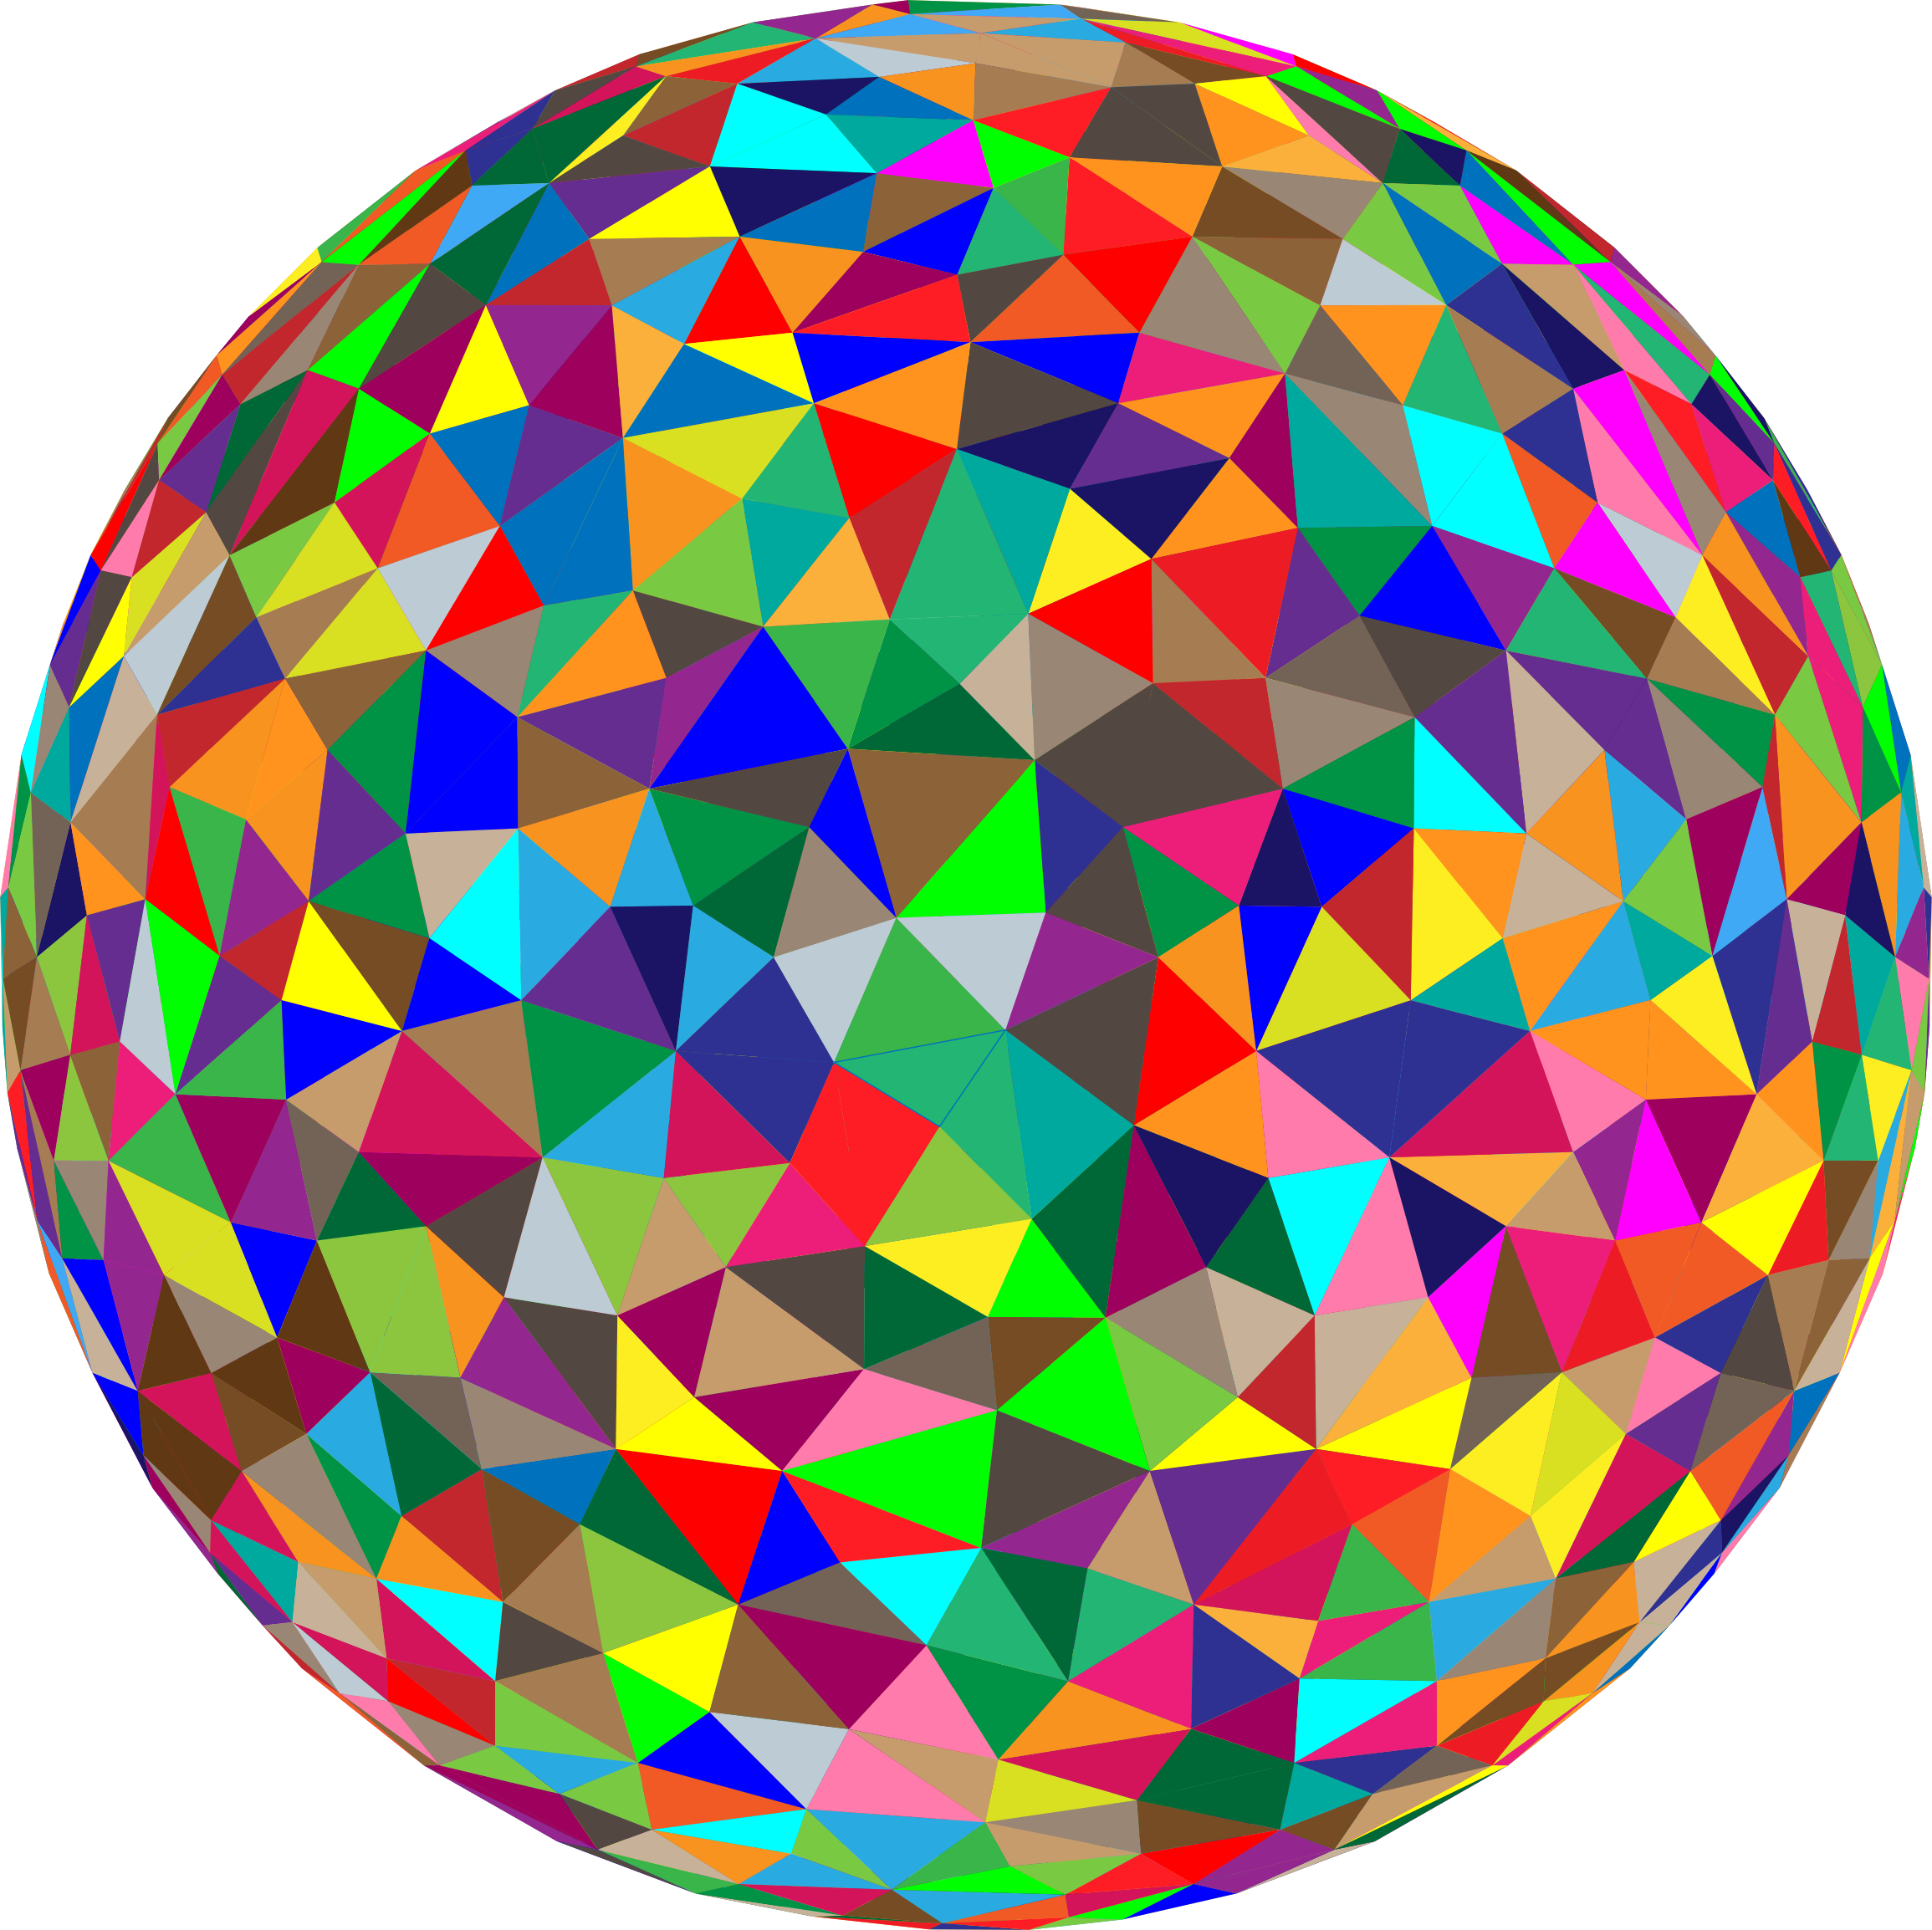 Prismatic Low Poly Sphere 5 by GDJ